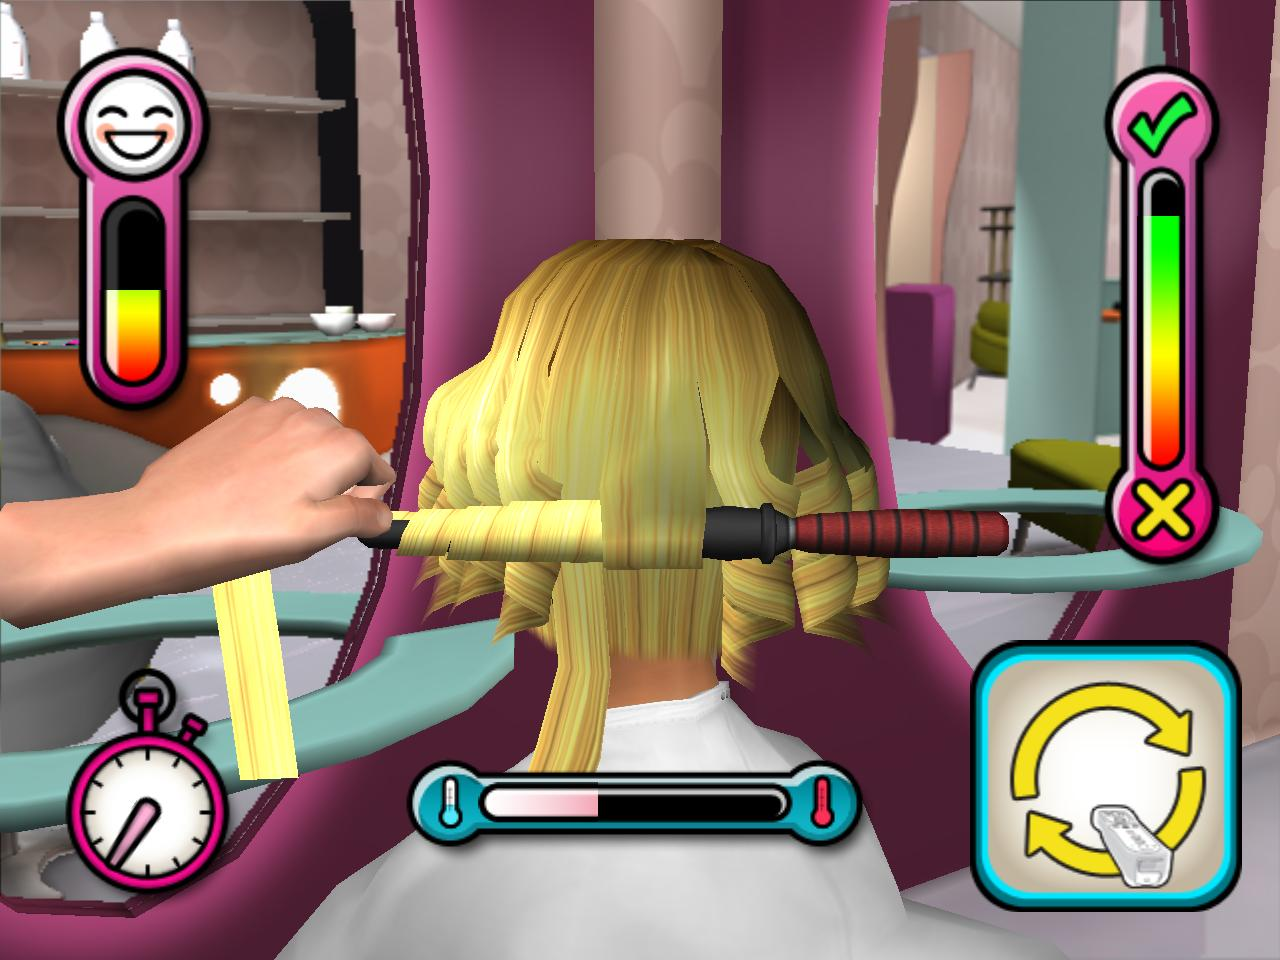 Hair Styling Games Online: They Seriously Made A Hair Cutting Game